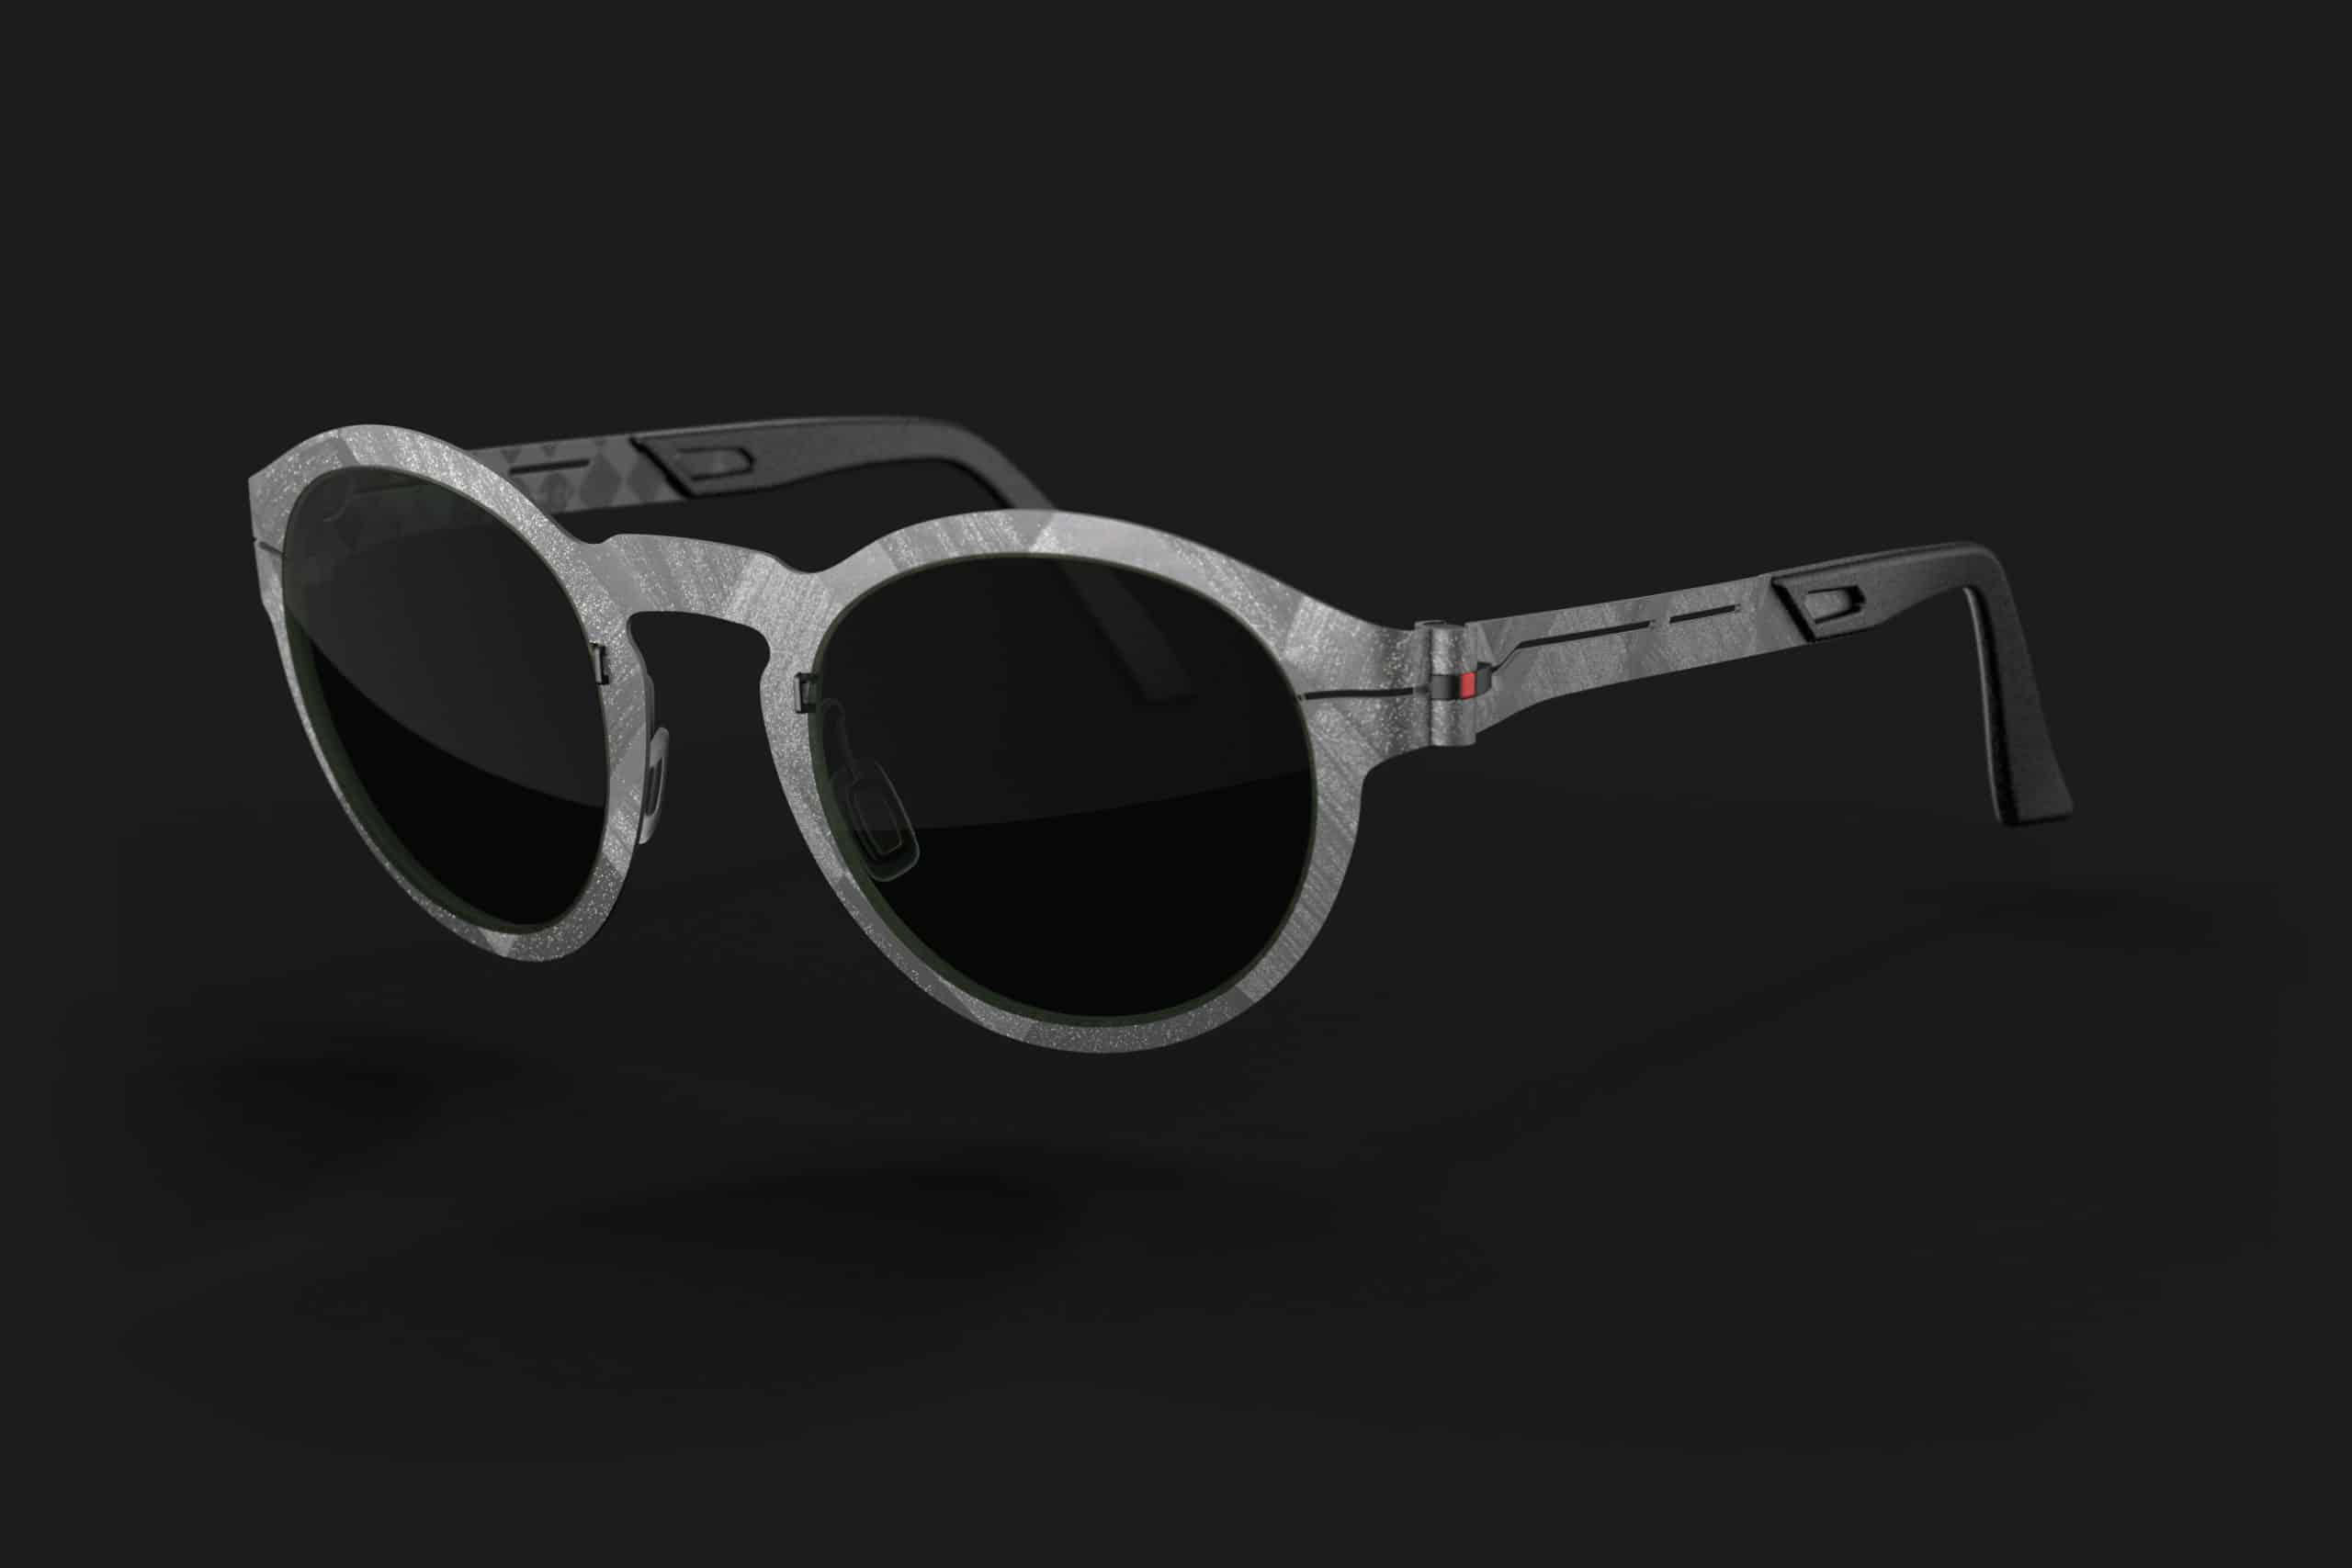 CARB-022-sun in raw star carbon sunglasses